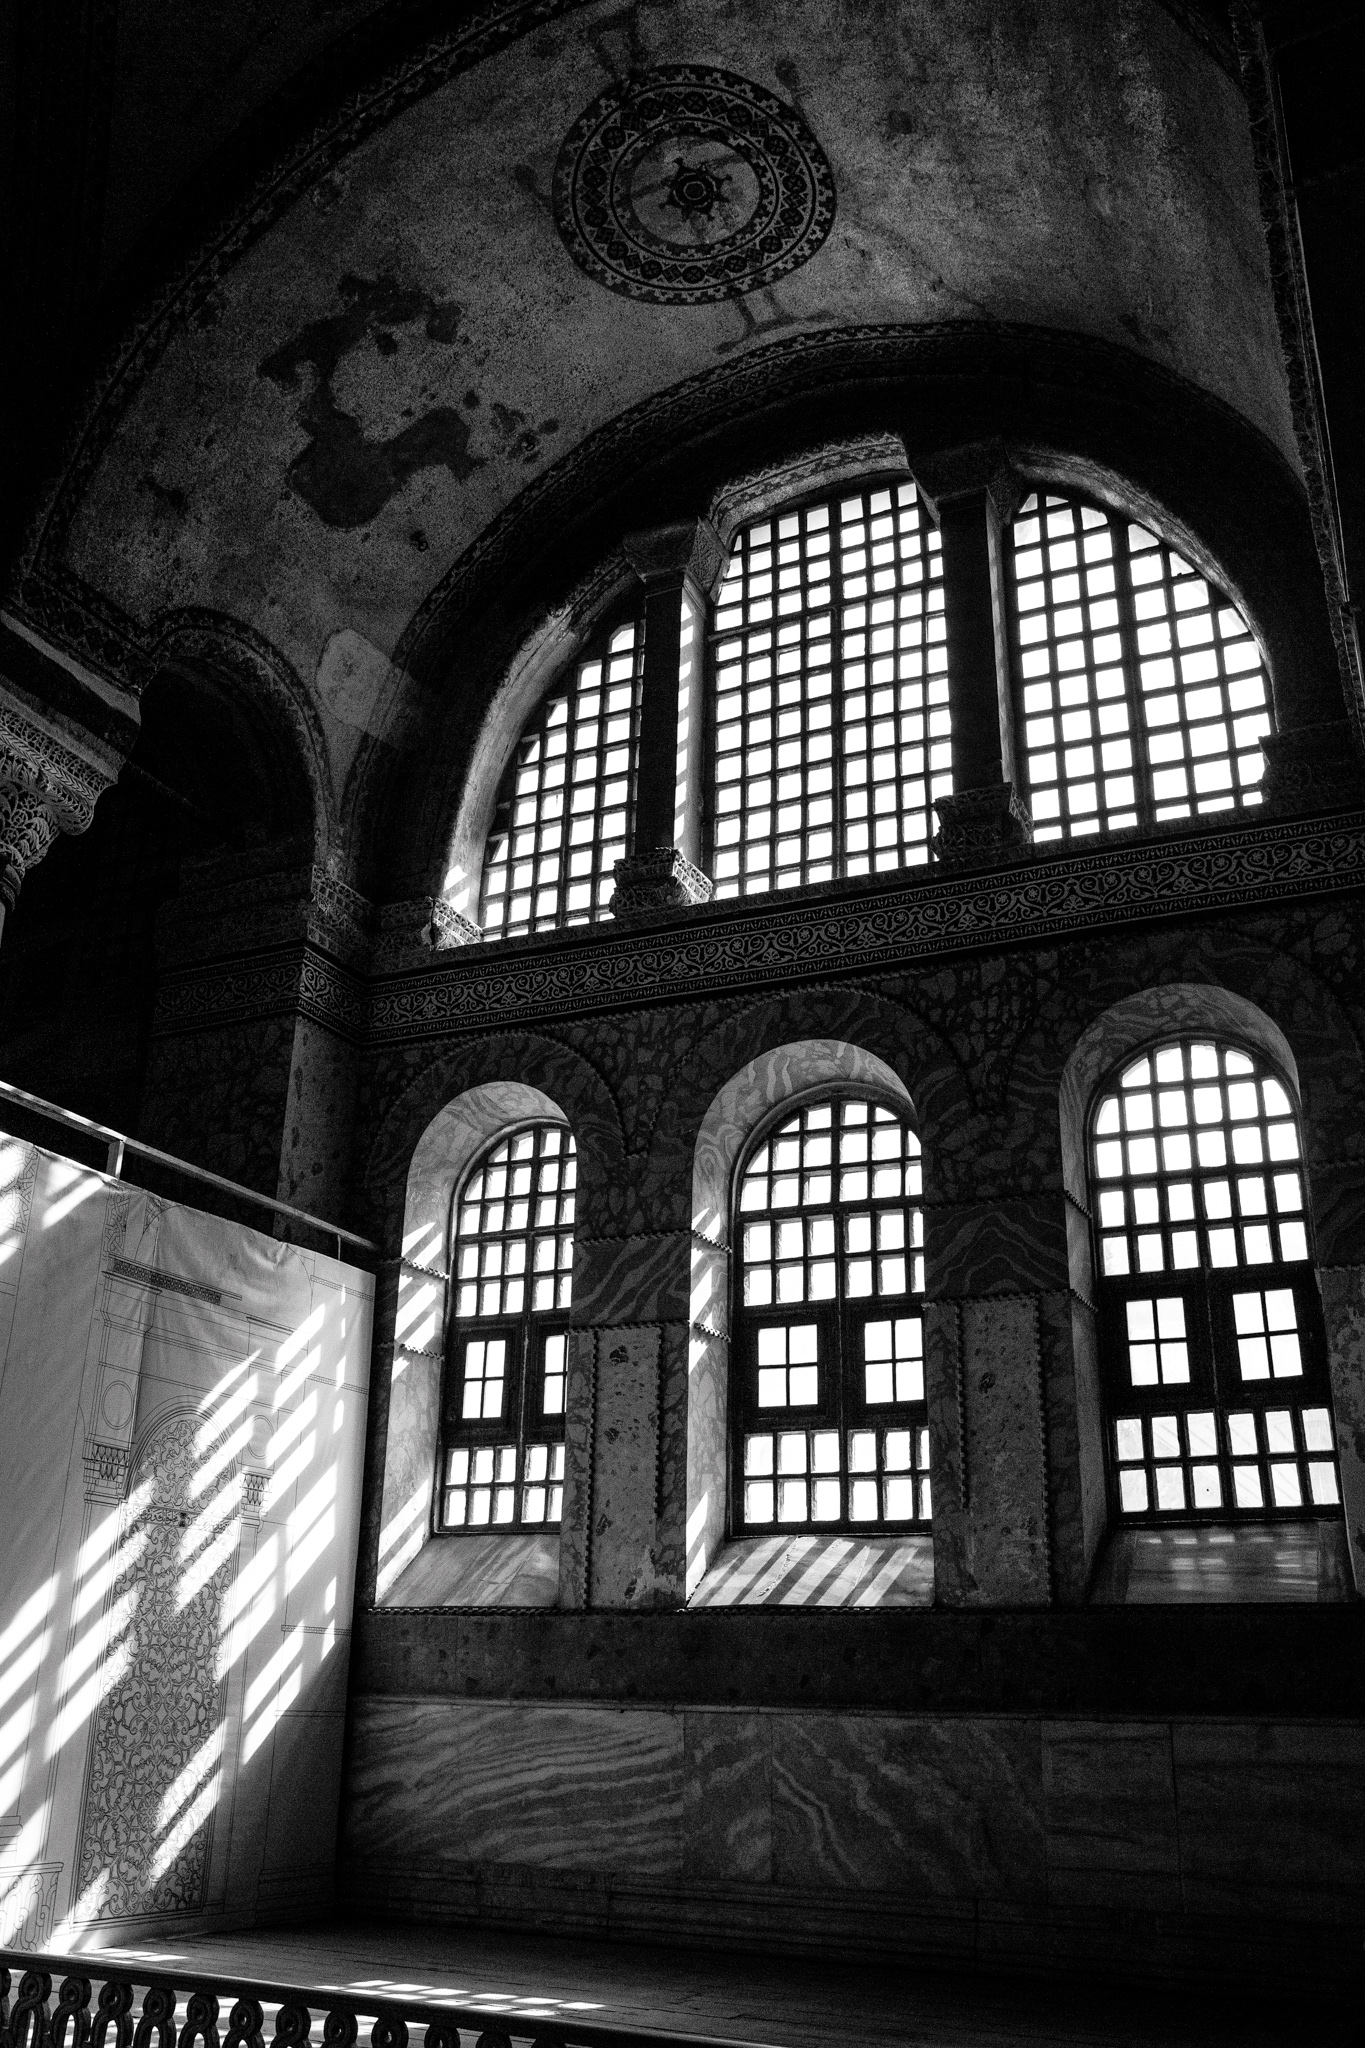 istanbul_ayasofya_inside-1629-window-light-beams.jpg